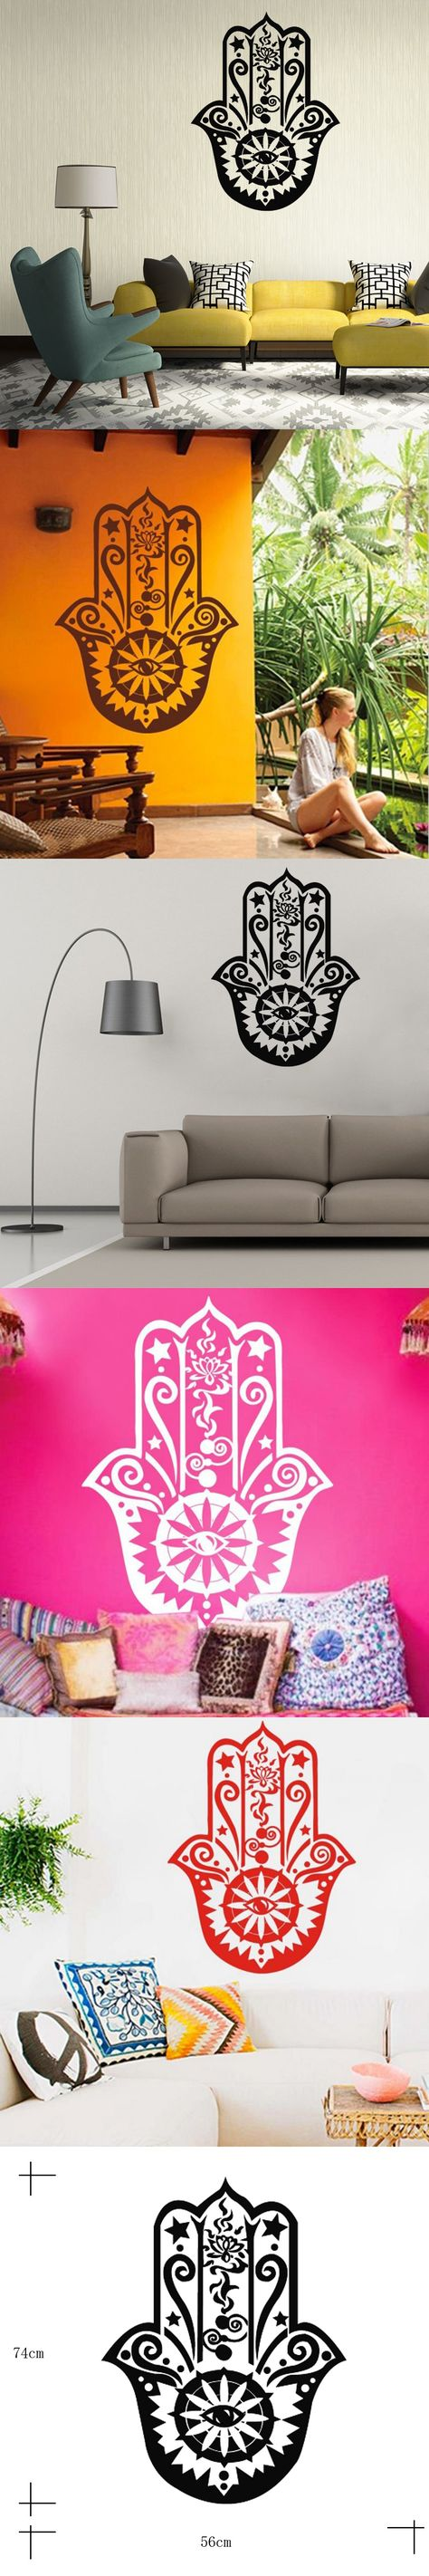 Funlife Art Design Hamsa Hand Wall Decal Vinyl Fatima Yoga Vibes Sticker Fish Eye Decals Indian Buddha Home Decor Lotus Mural $6.99